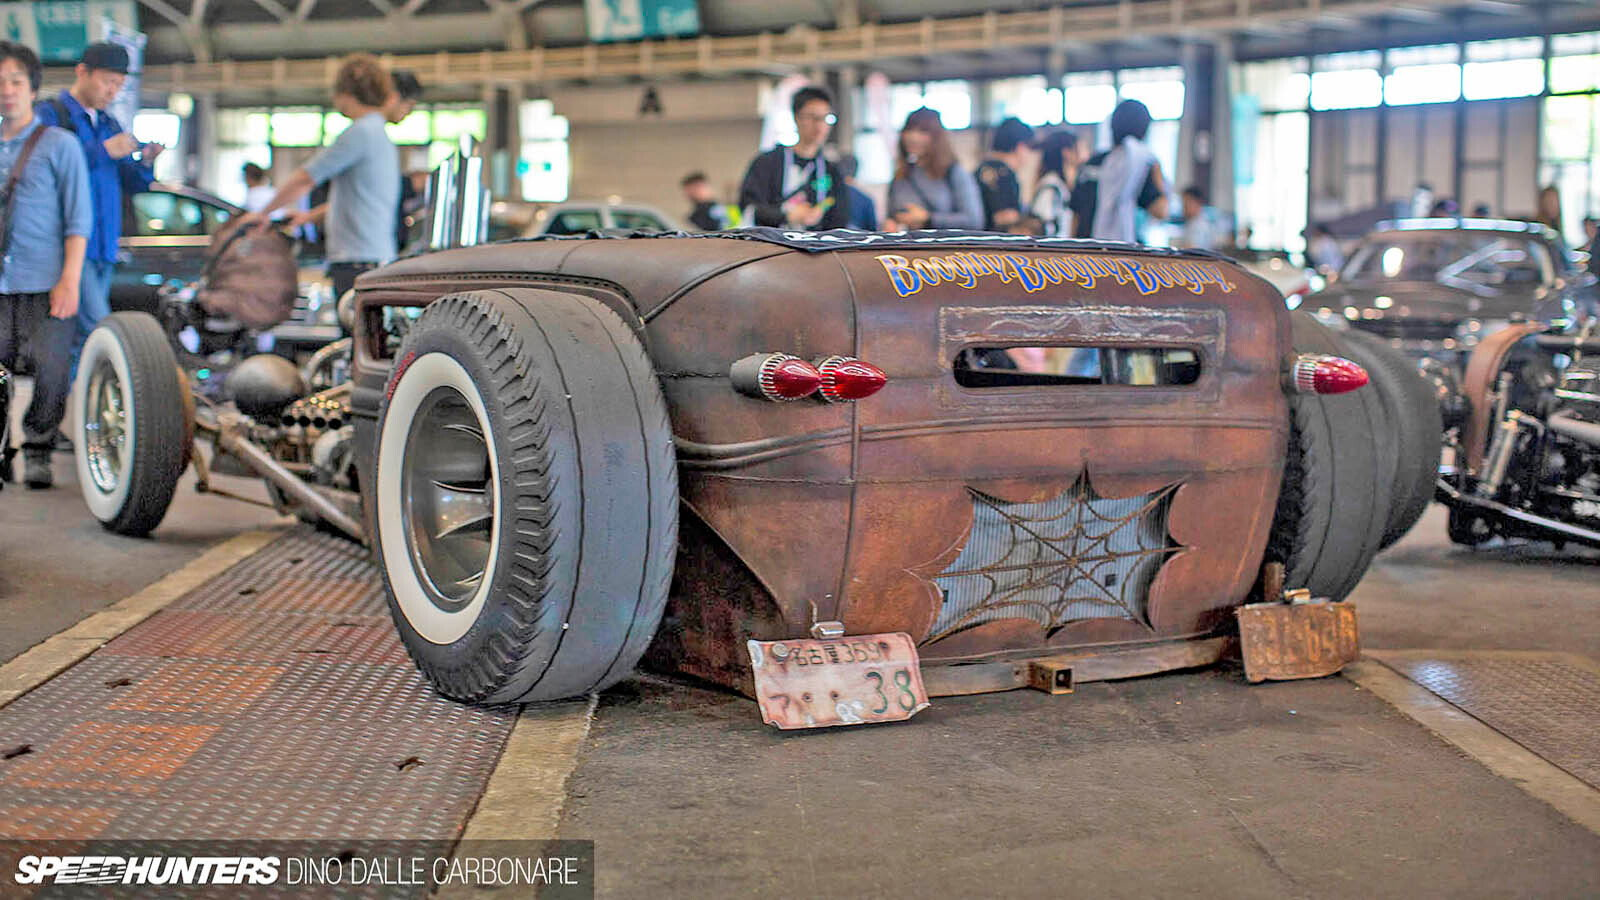 Wekfest Japan Has Just What You Want to See